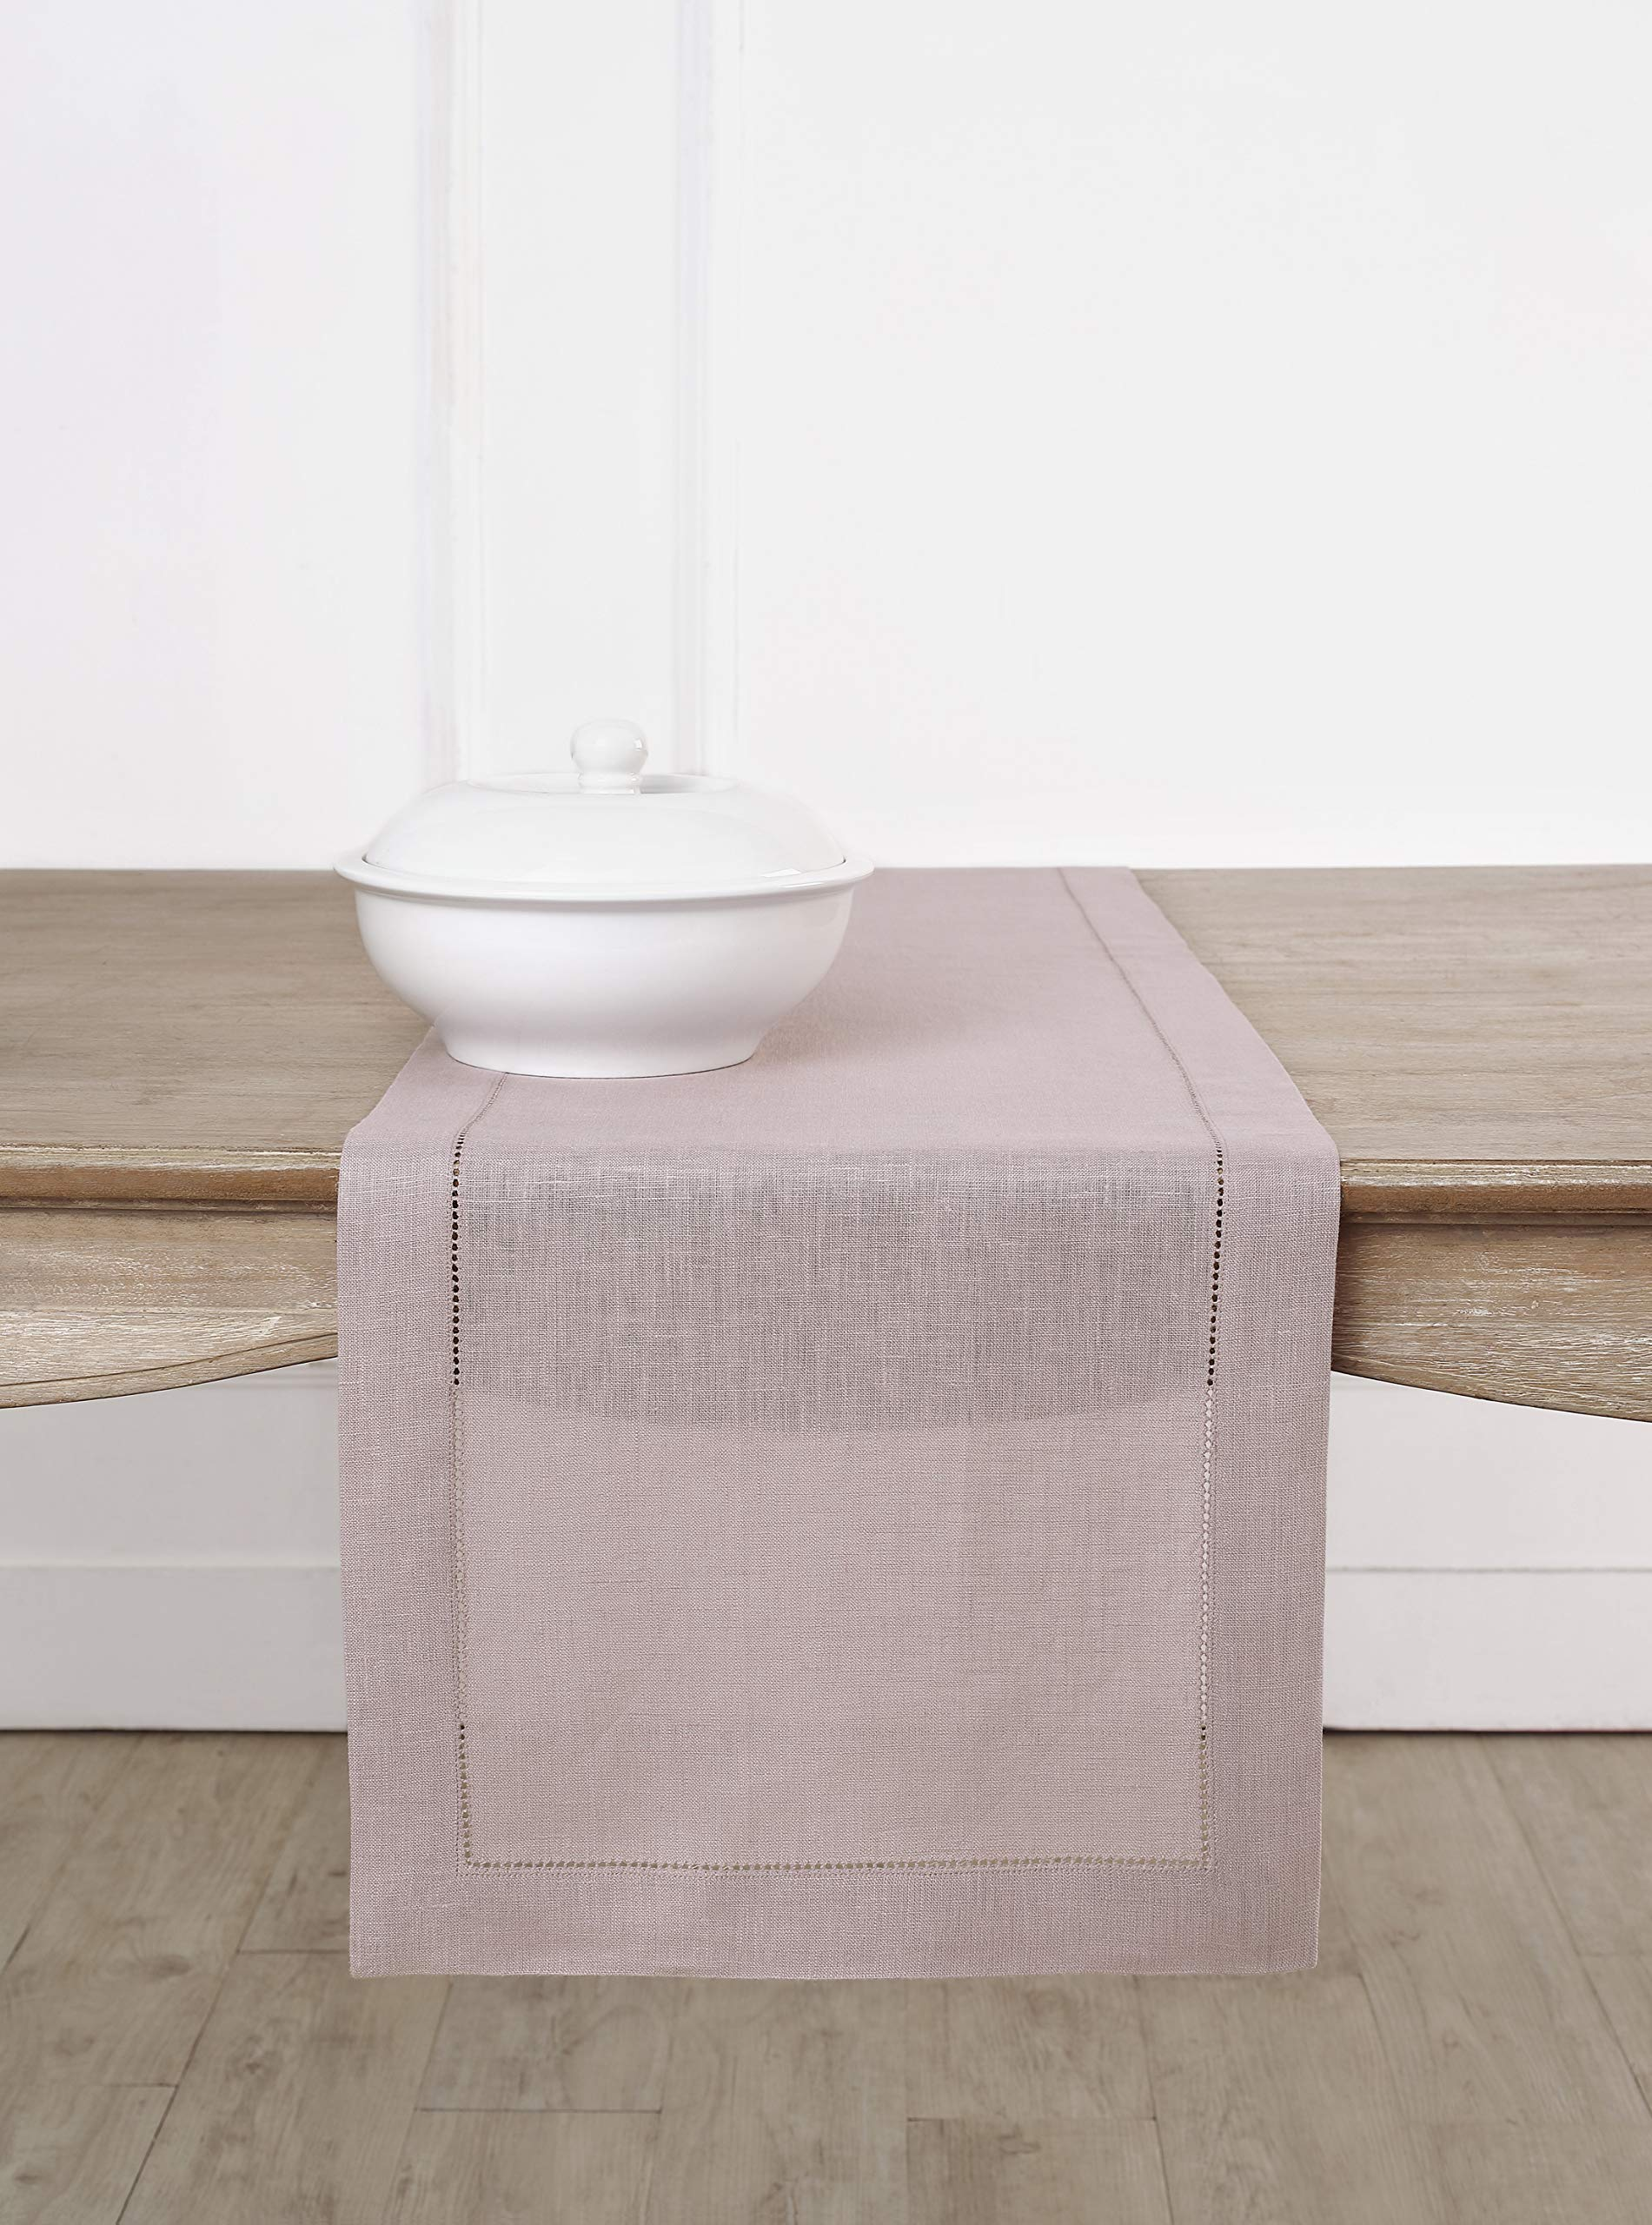 Solino Home Hemstitch Linen Table Runner - 14 x 72 Inch, Handcrafted from European Flax, Machine Washable Classic Hemstitch - Lilac